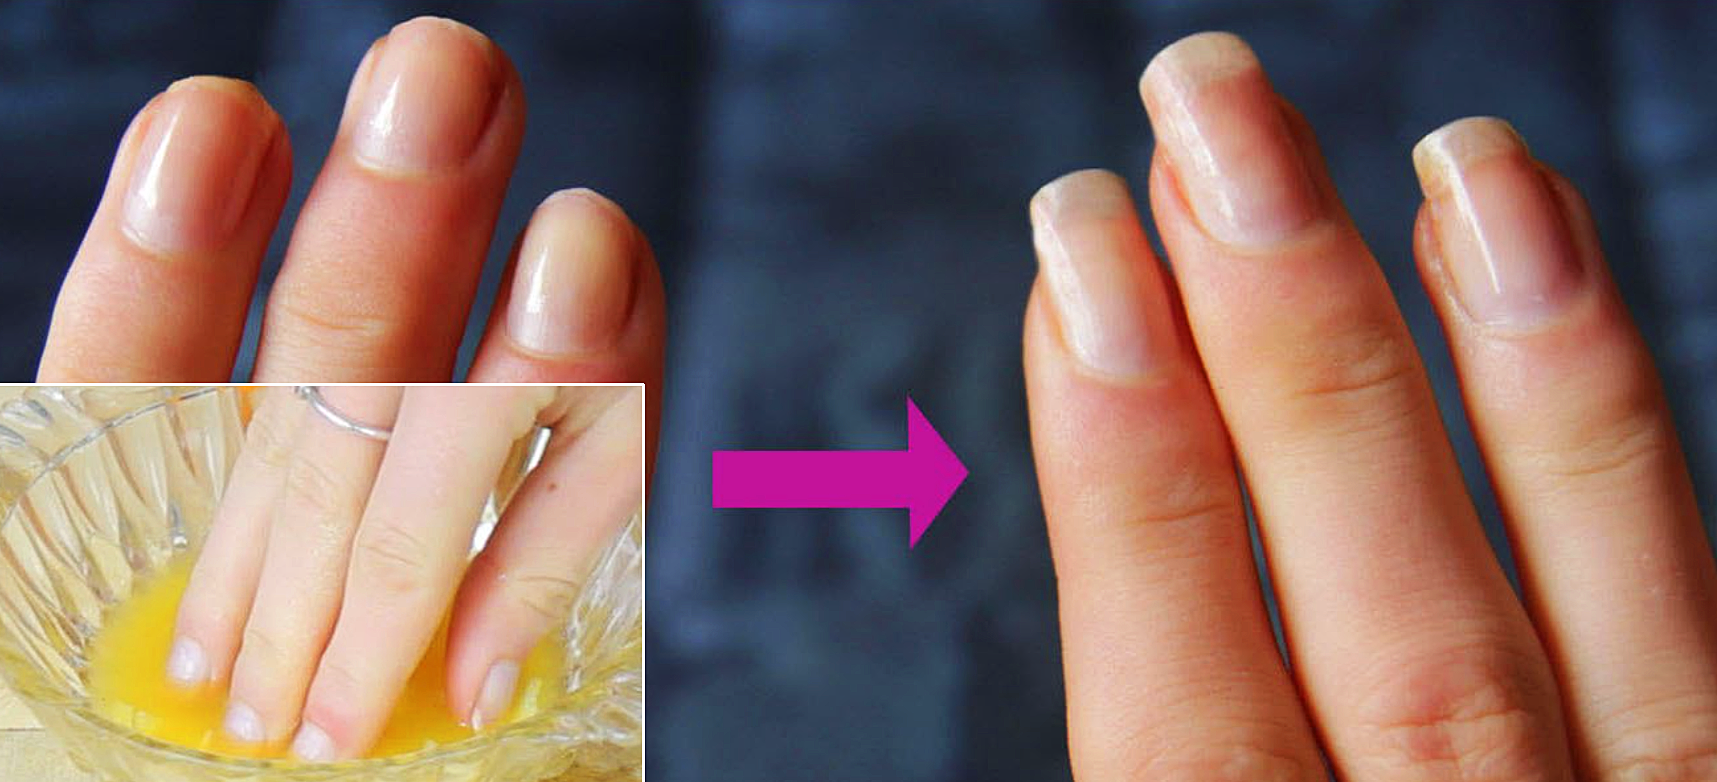 9 Fingernail Signs That May Indicate Health Issues